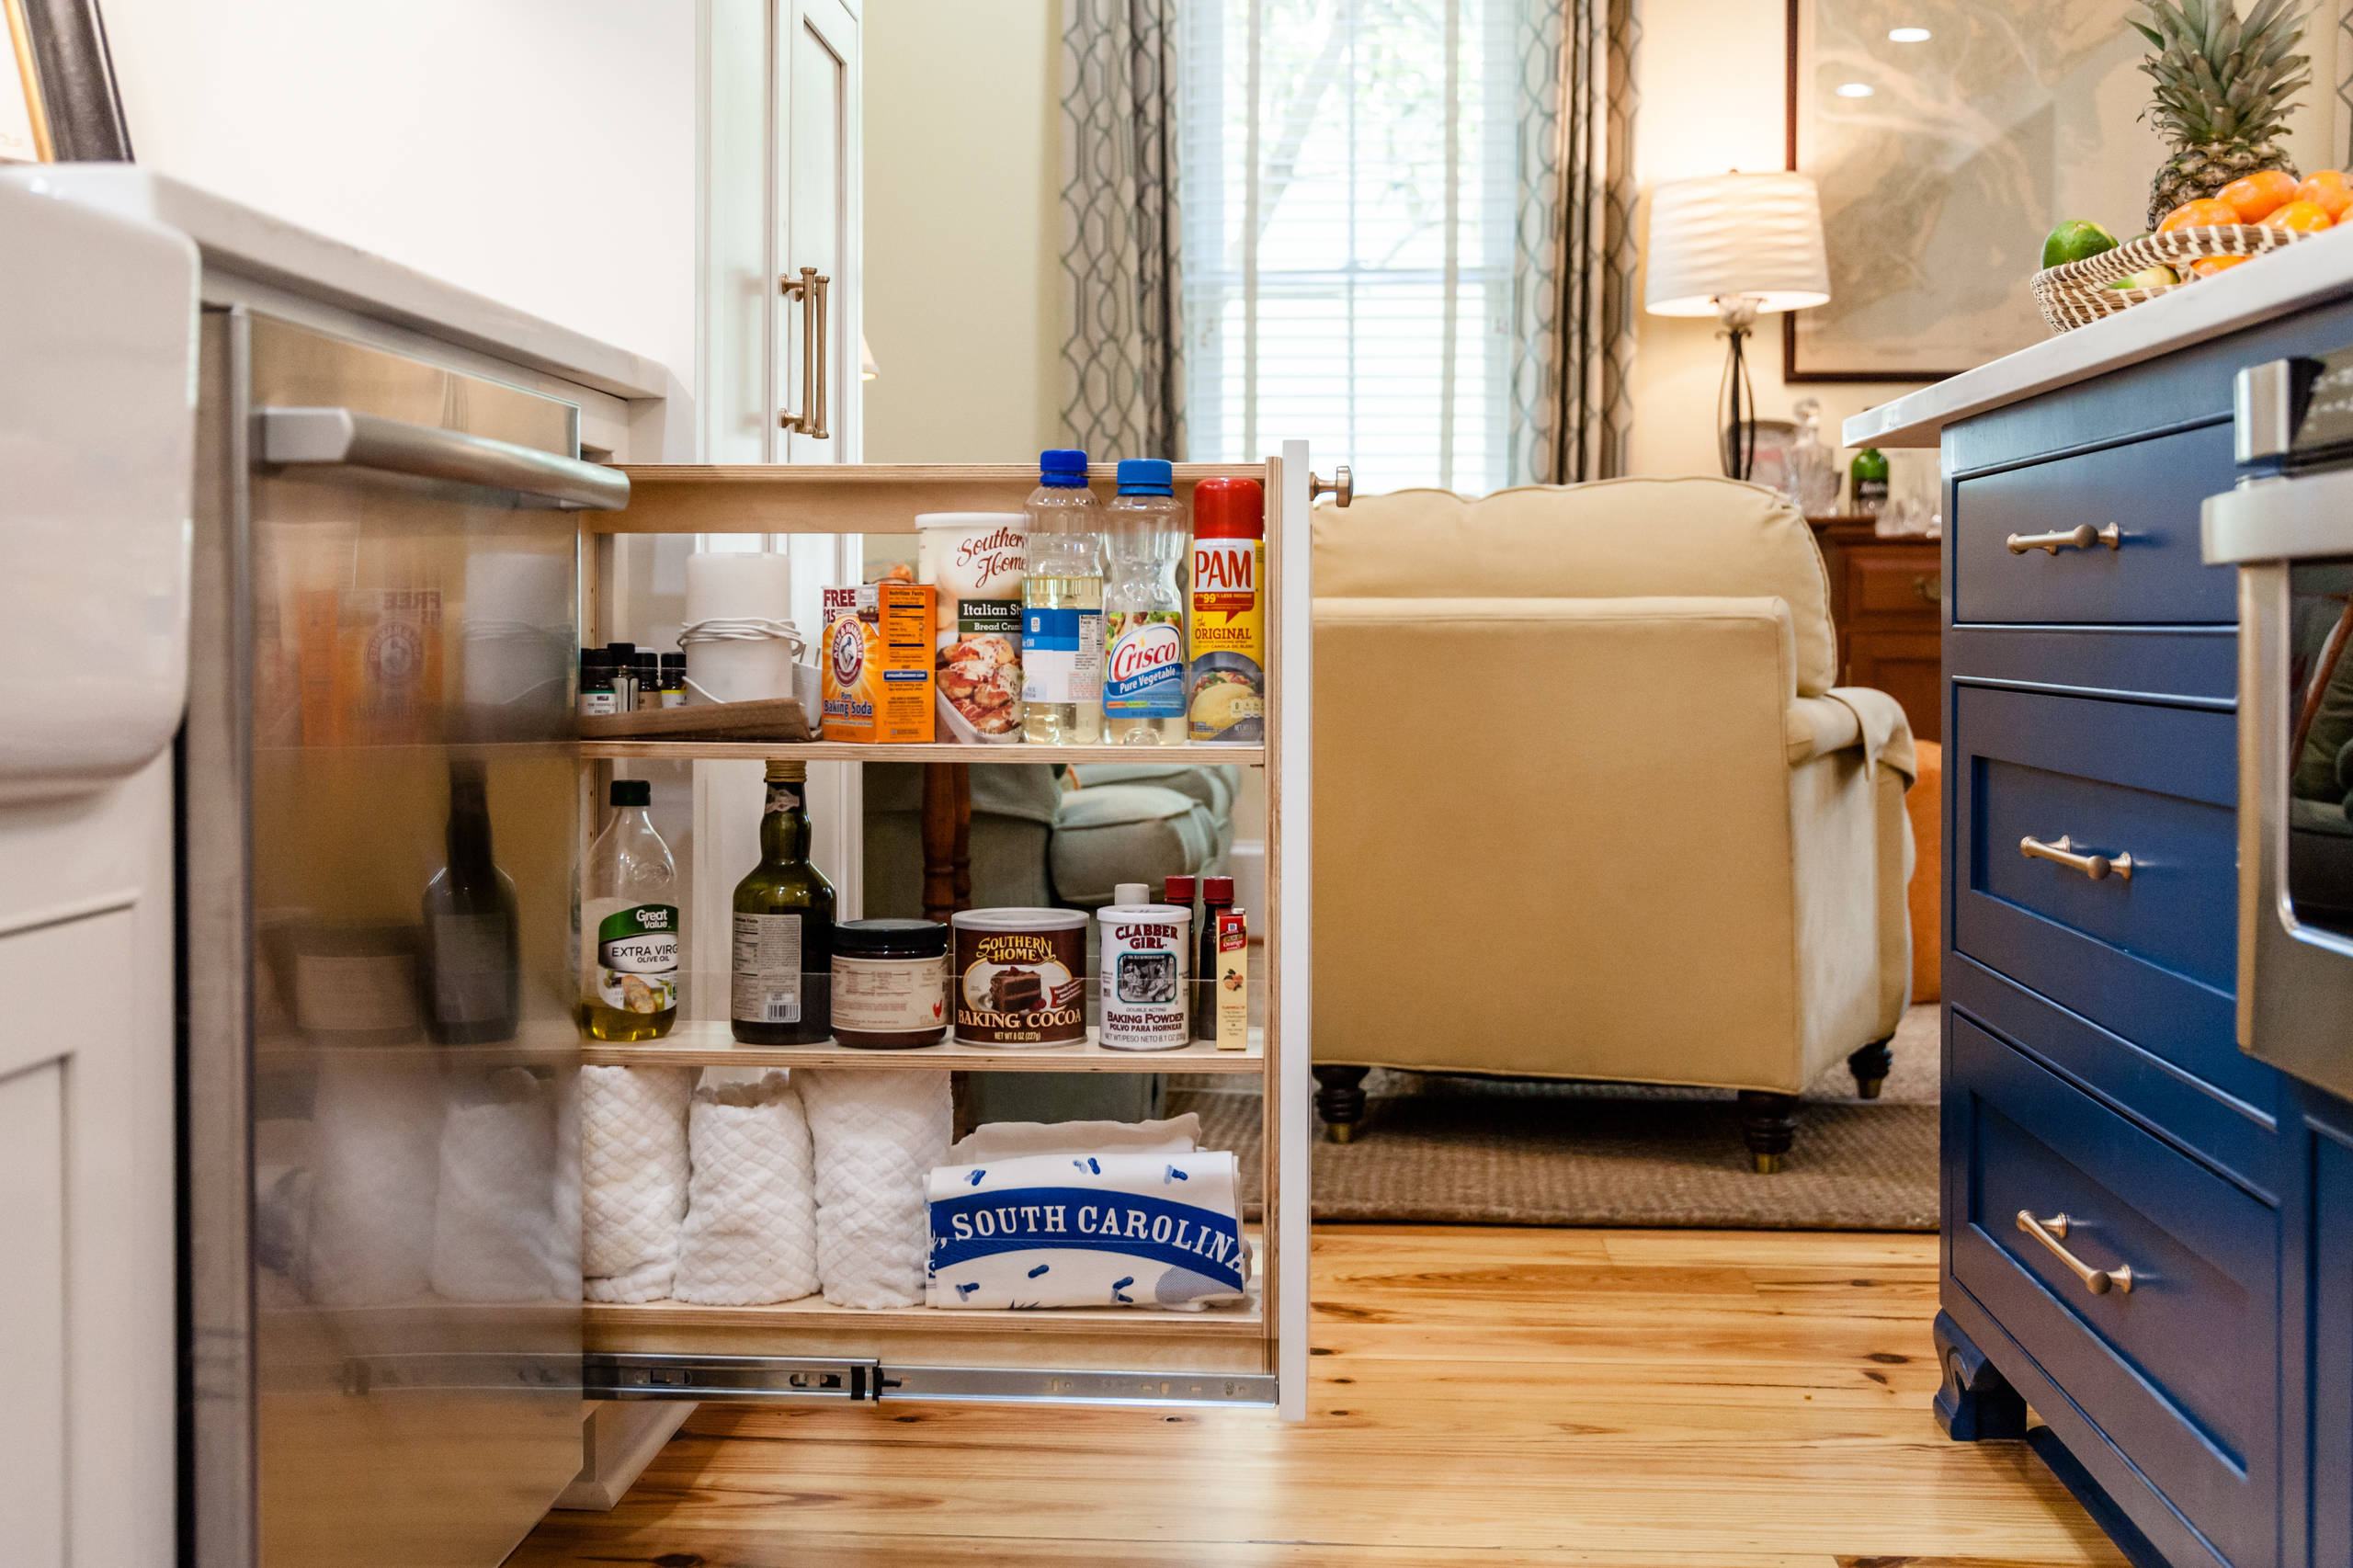 A pull-out rack holds baking gear and kitchen essentials